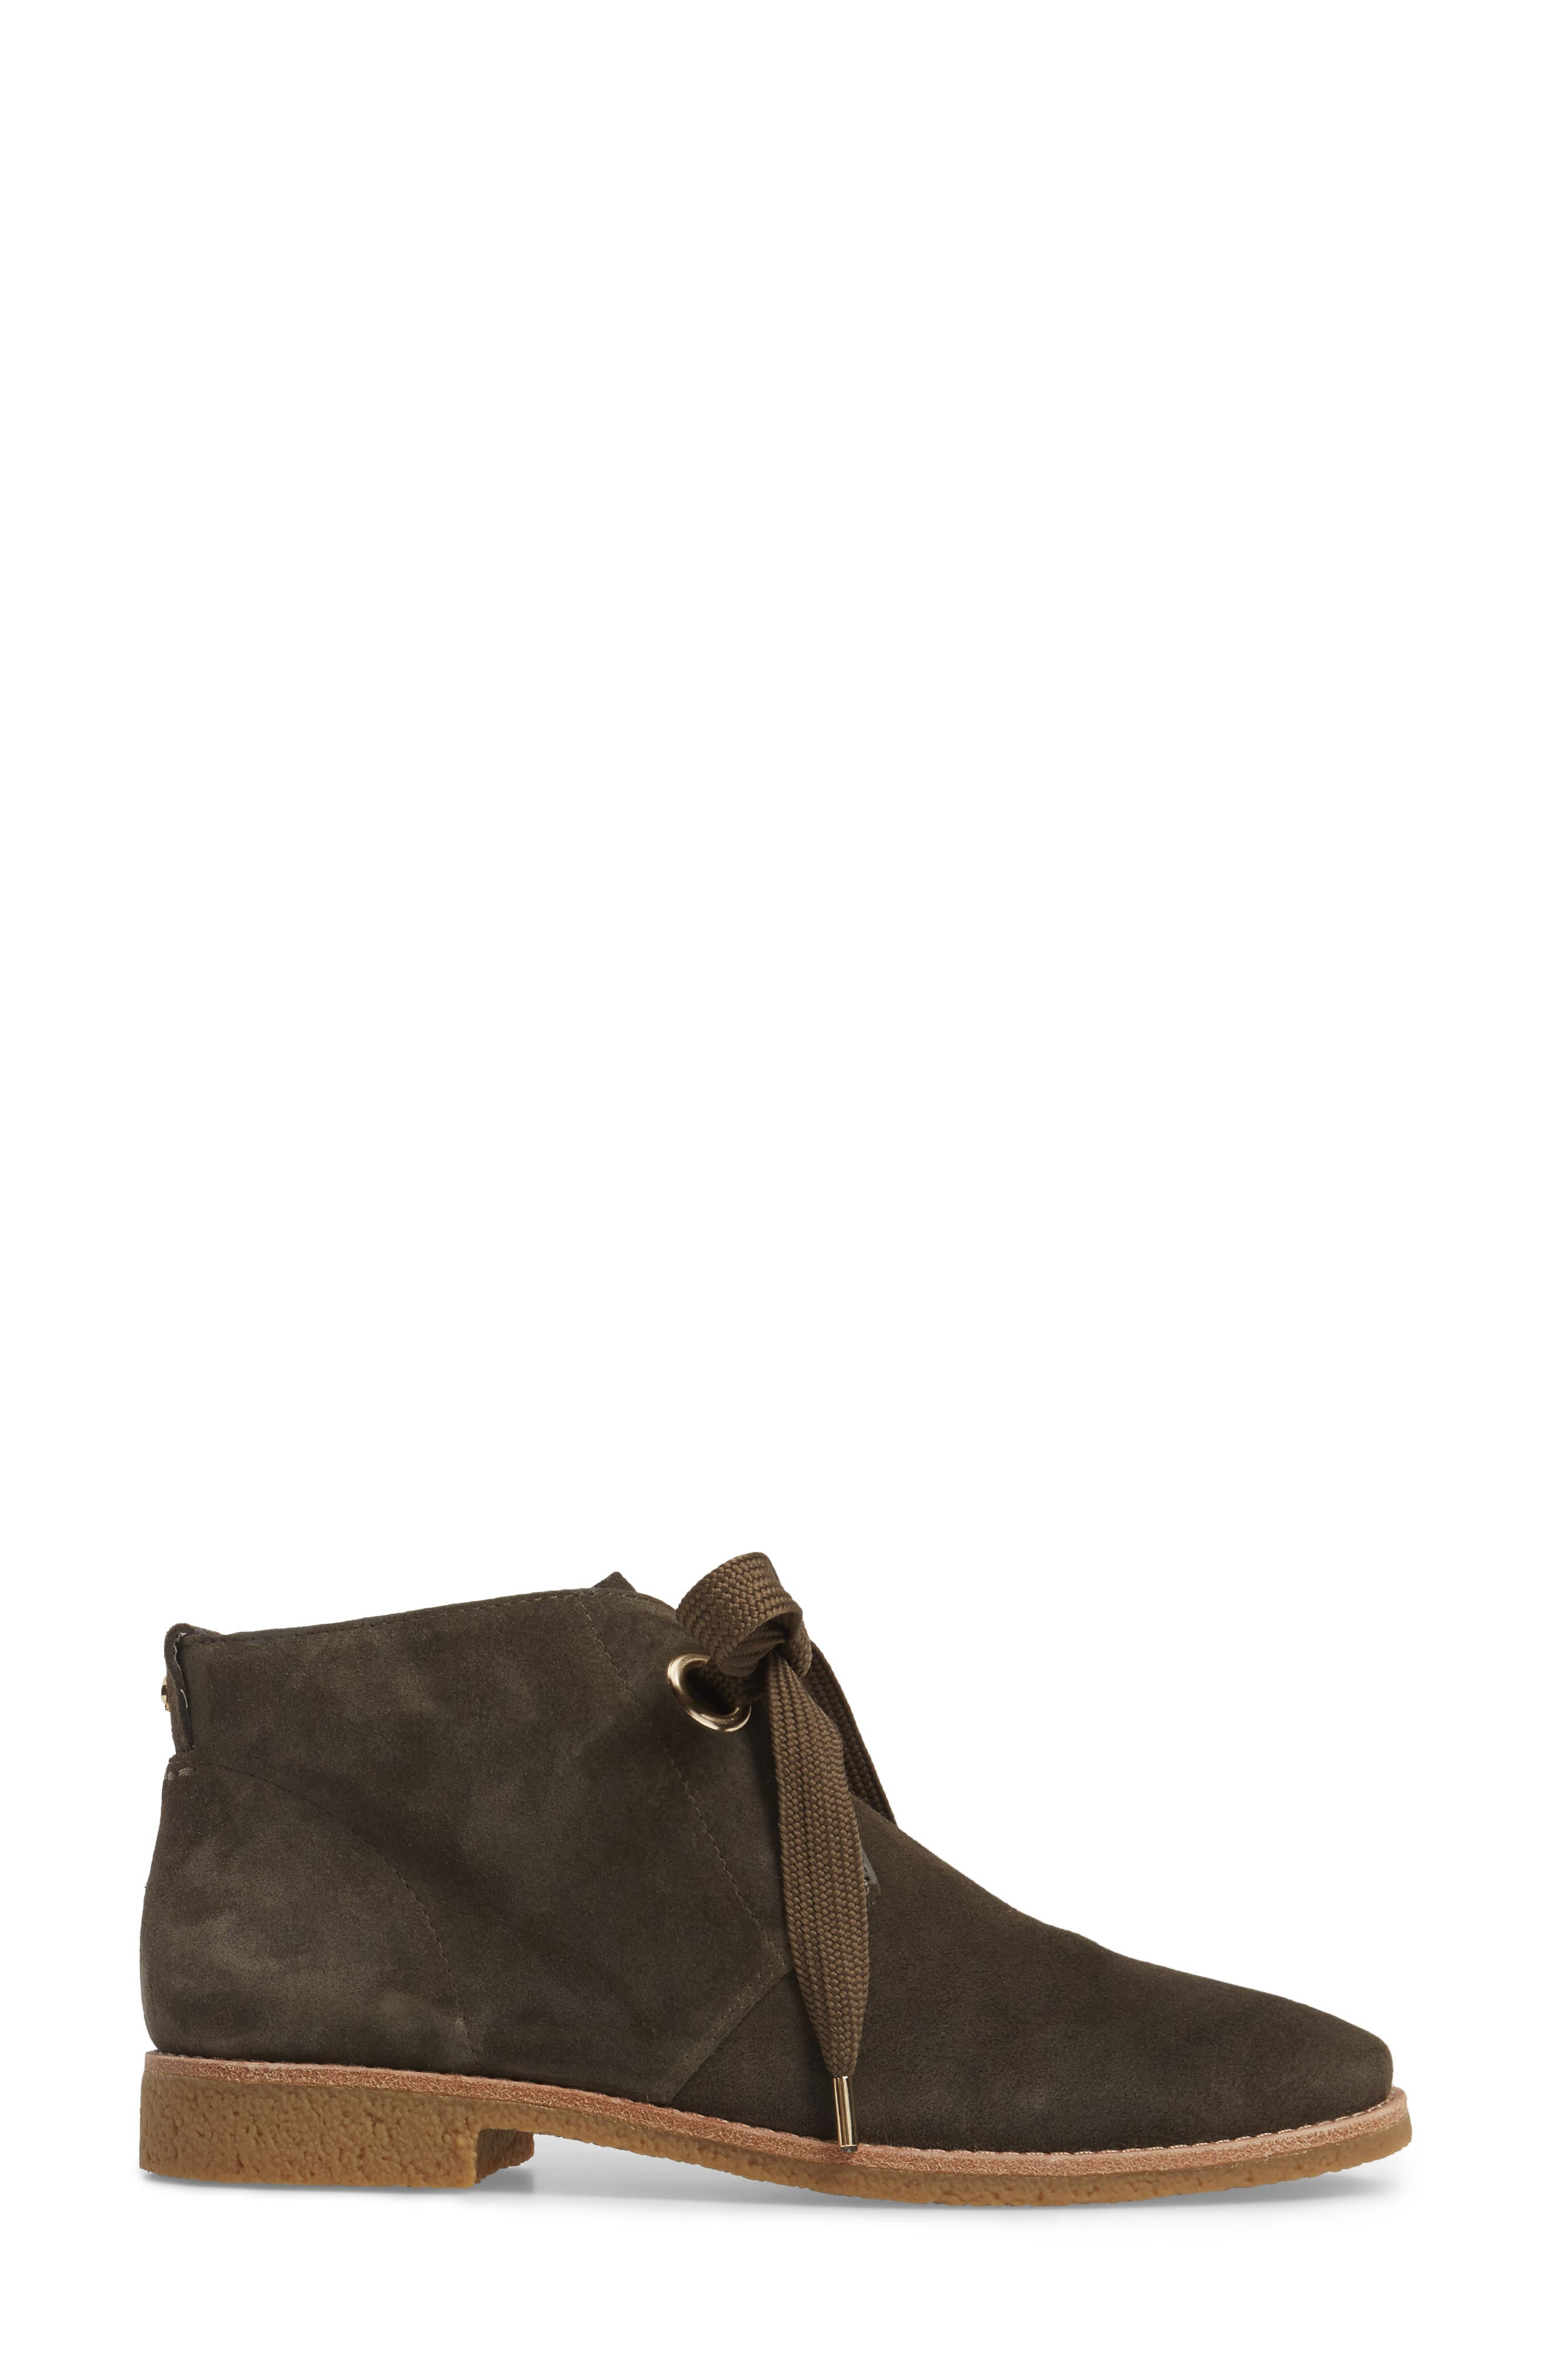 barrow chukka boot,                             Alternate thumbnail 3, color,                             Olive Green Suede